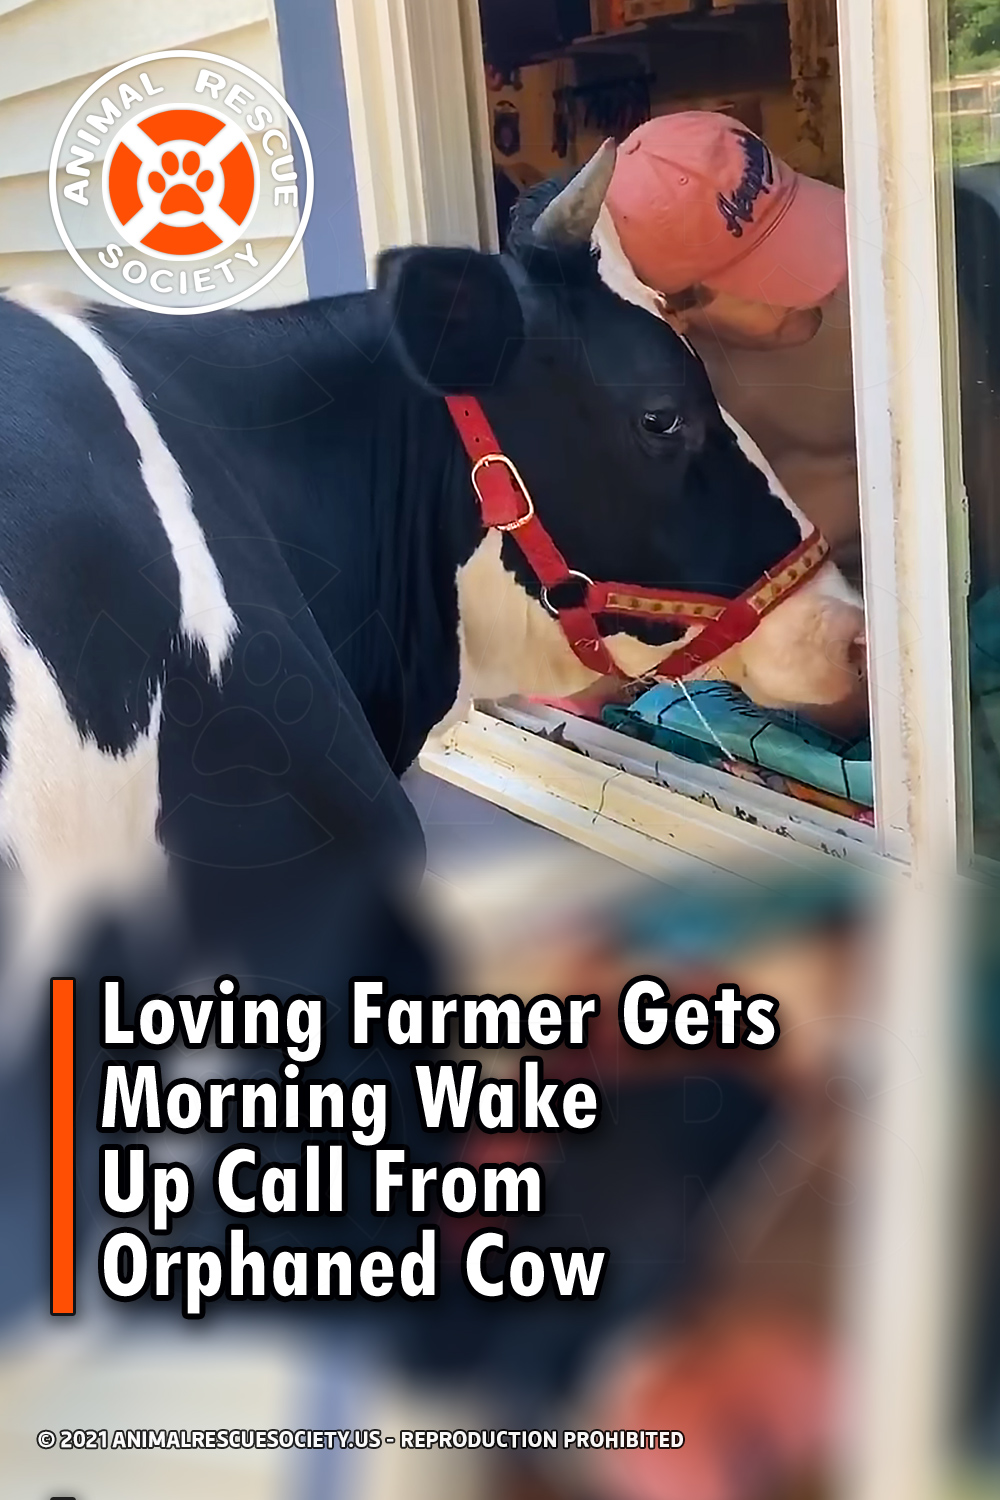 Loving Farmer Gets Morning Wake Up Call From Orphaned Cow